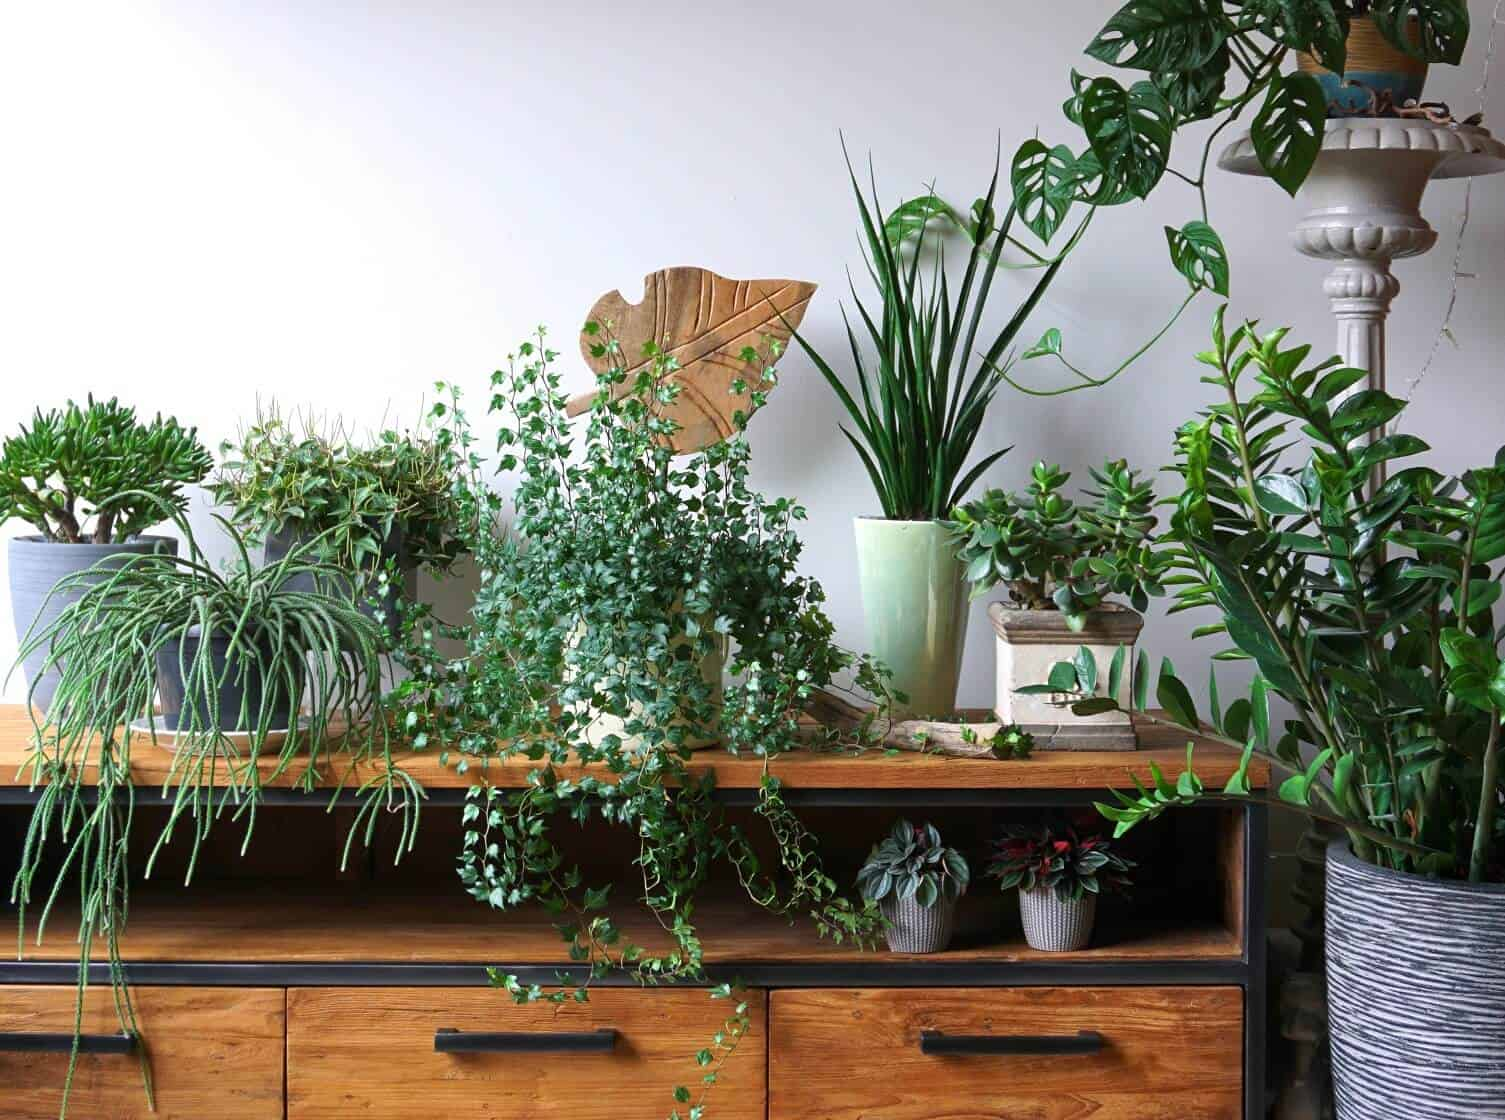 17 Indoor Vine Plants for The Ultimate Jungle Vibe